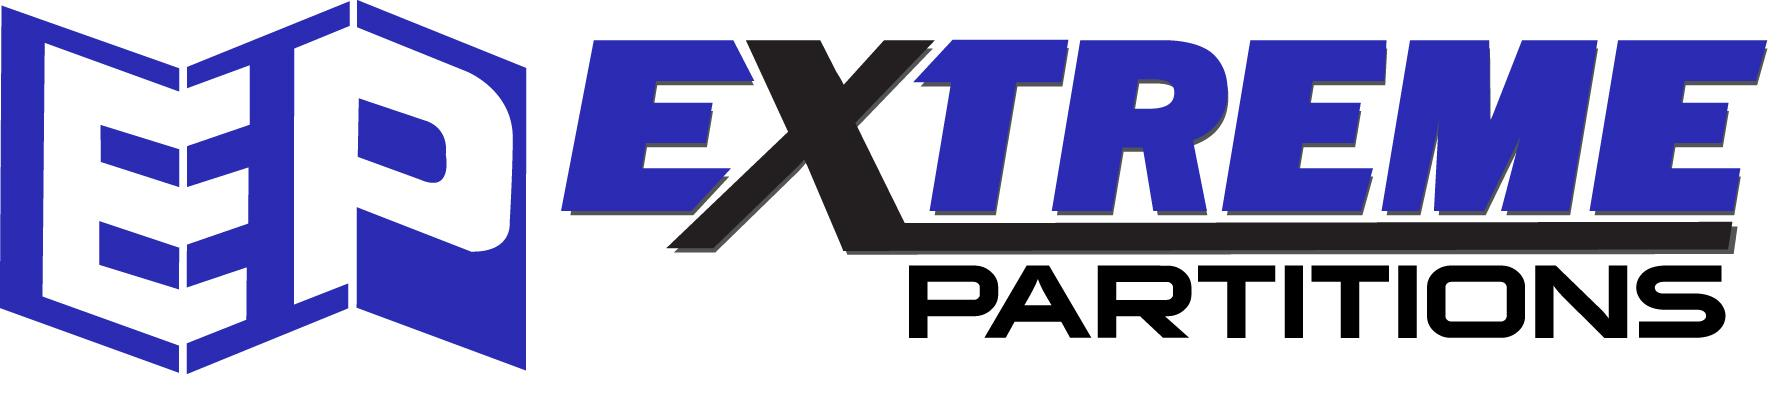 Extreme Partitions Ltd.